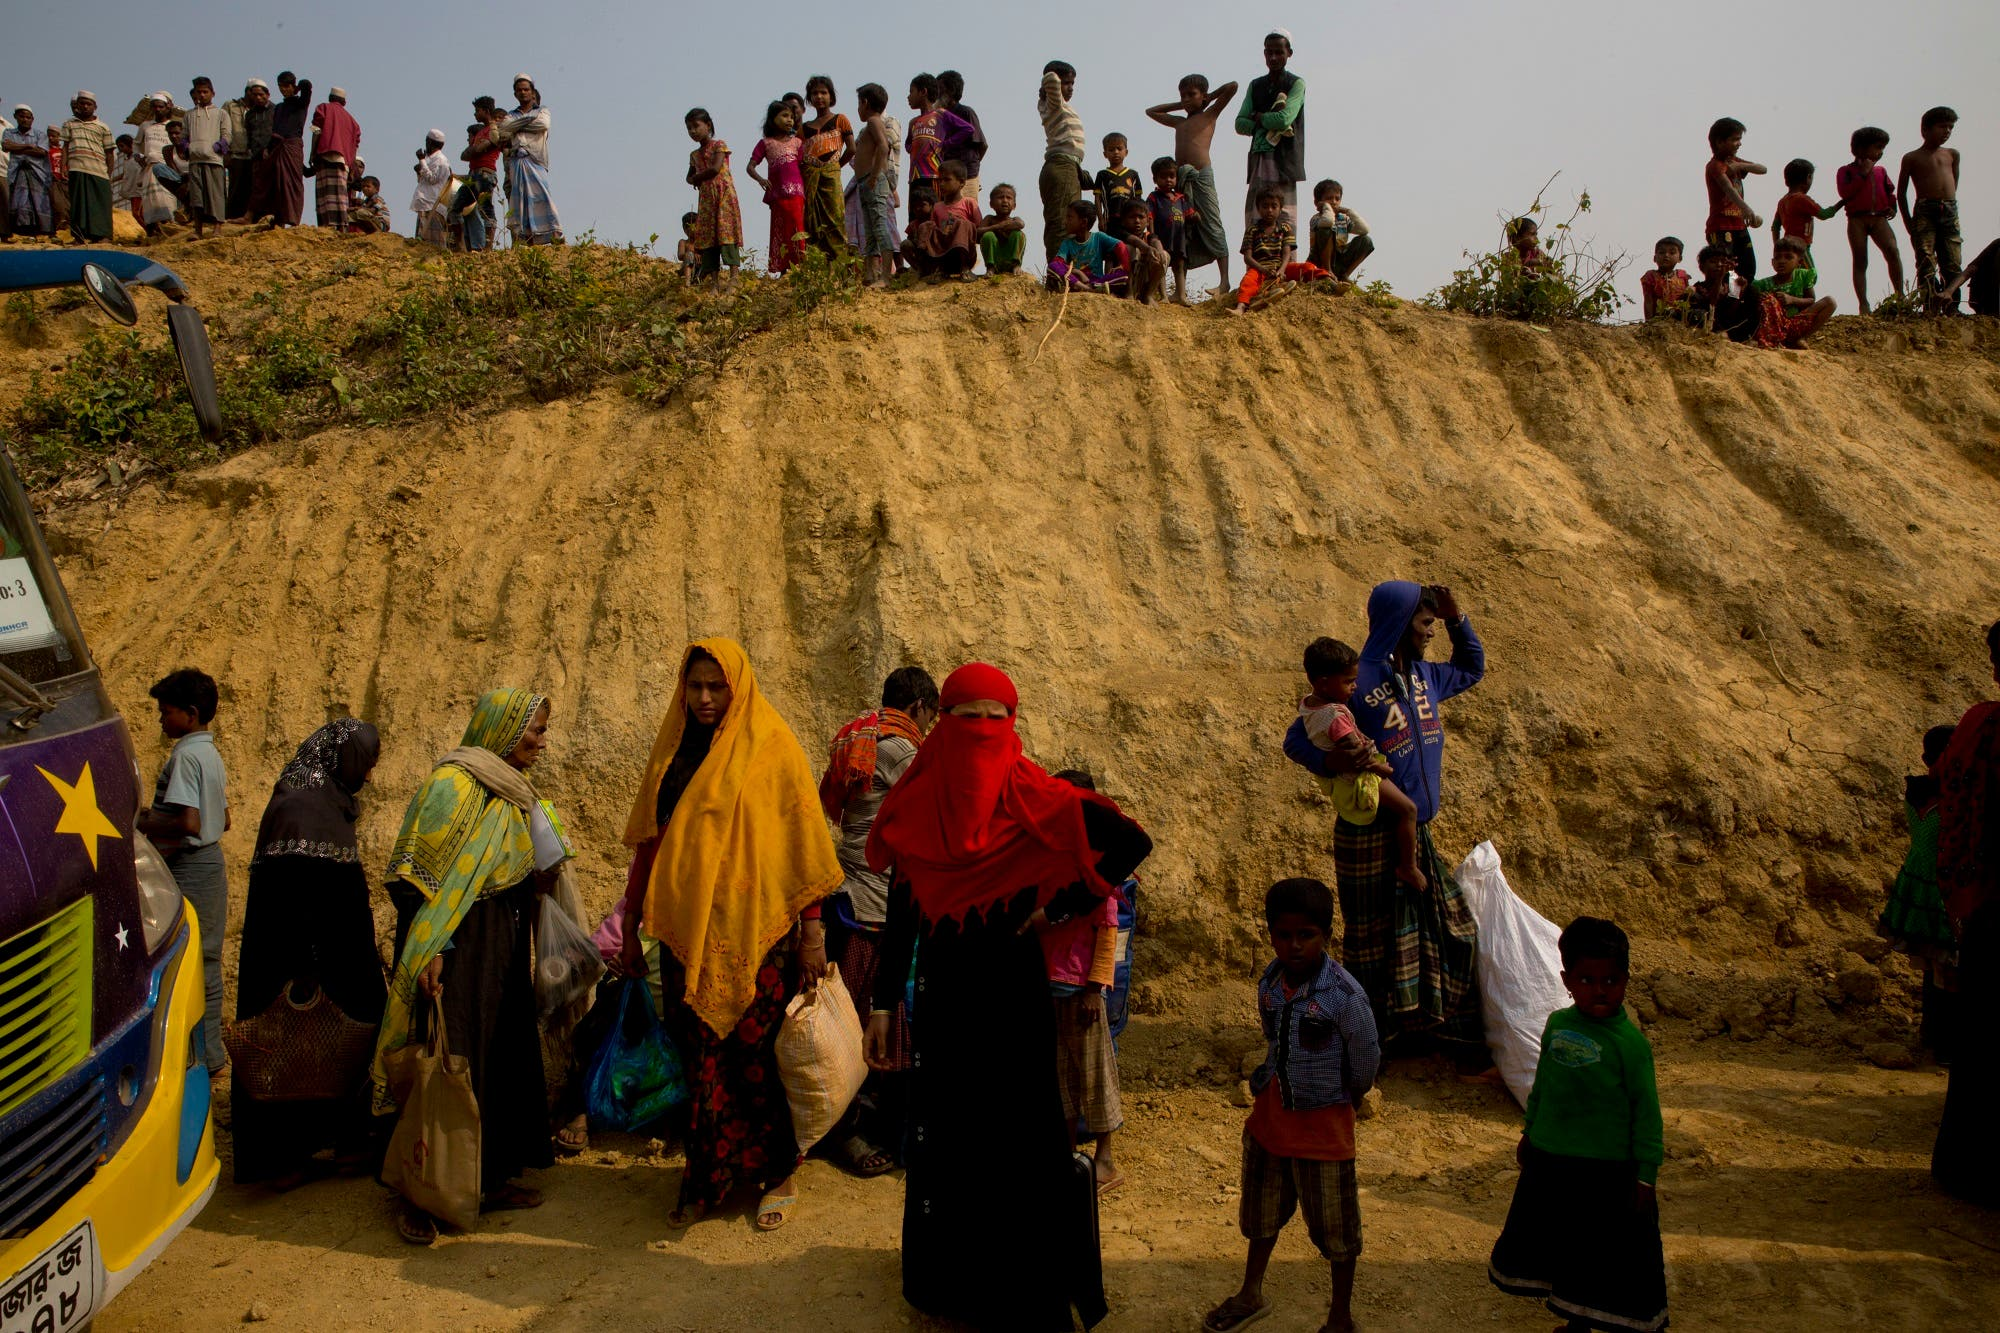 Rohingya Muslims watch from atop a hill as new refugees arrive in Balukhali refugee camp, 50 km from Cox's Bazar, Bangladesh, on Jan. 14, 2018. (AP)